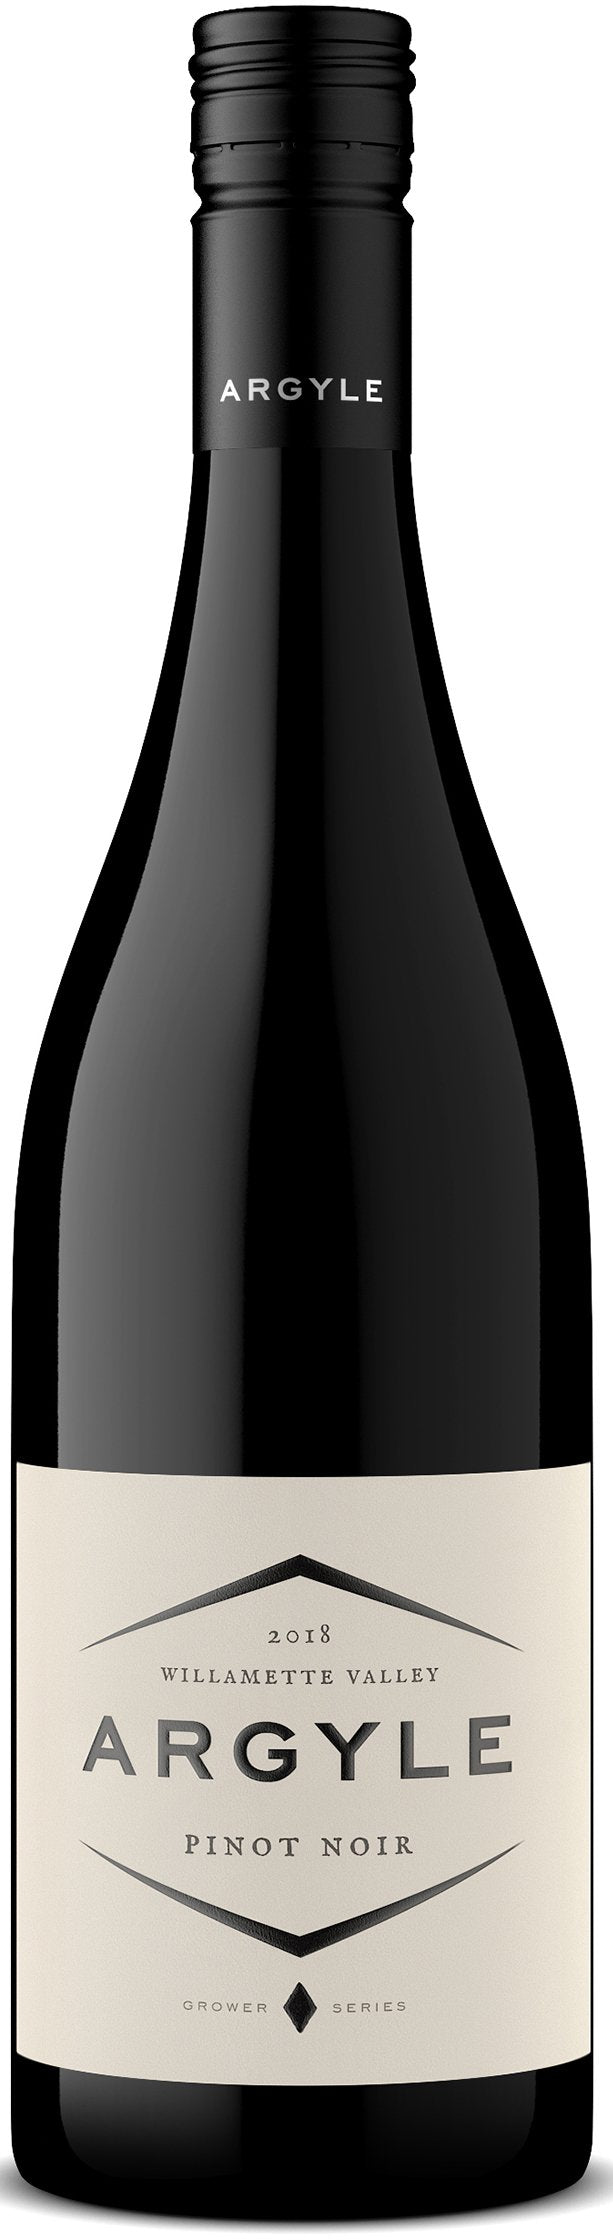 Argyle Pinot Noir Willamette Valley 2018